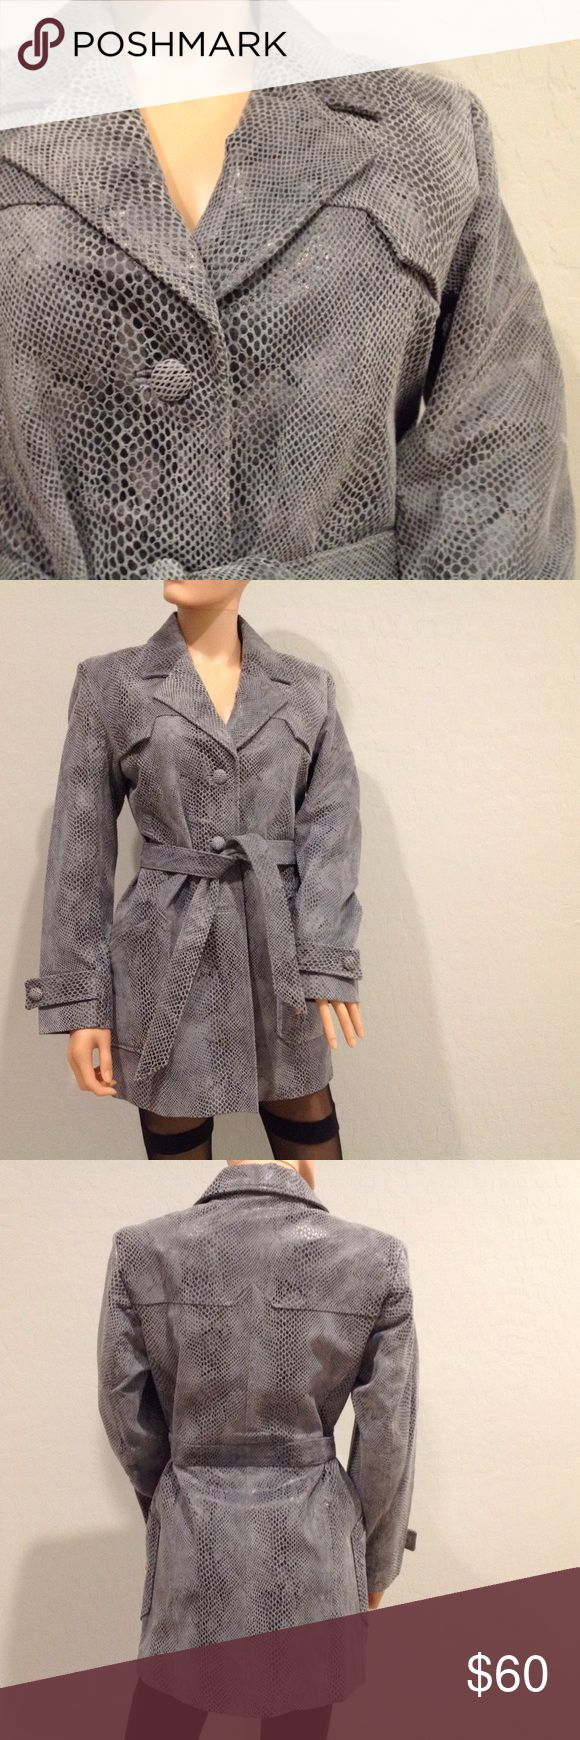 Leather Trench Coat New condition. Real leather. Worn once. Fully lined. lucid Jackets & Coats